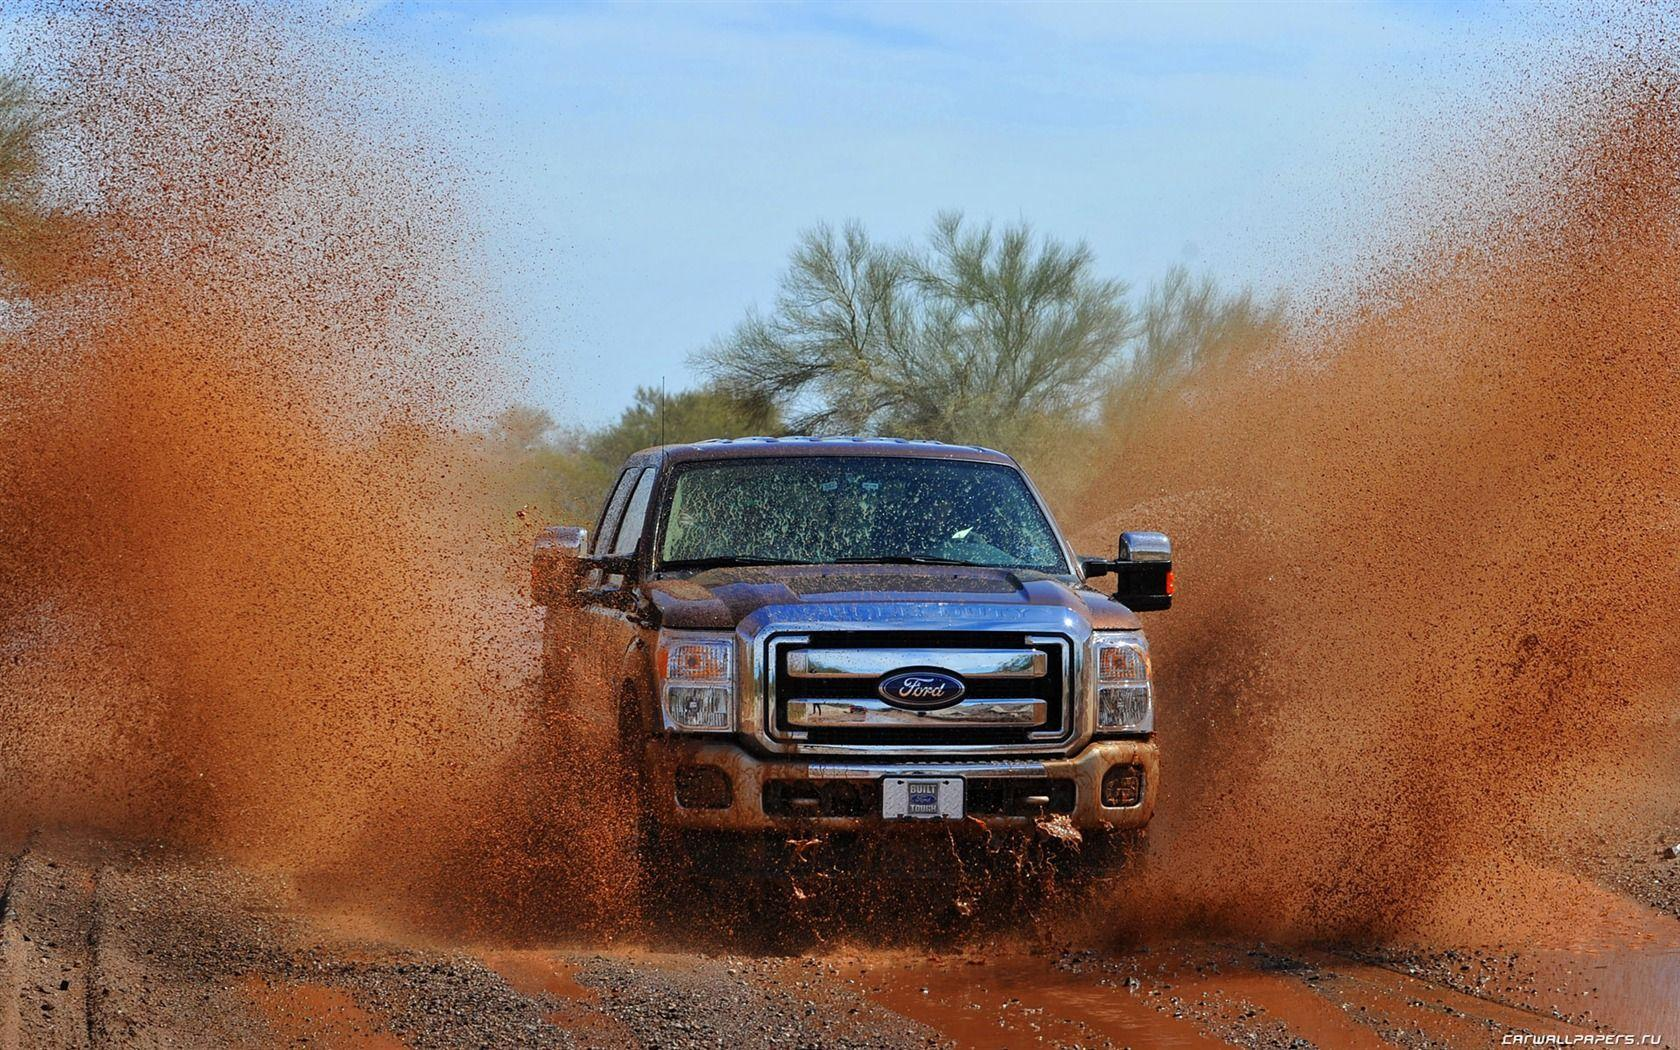 Ford F-250 Wallpapers and Background Images - stmed.net